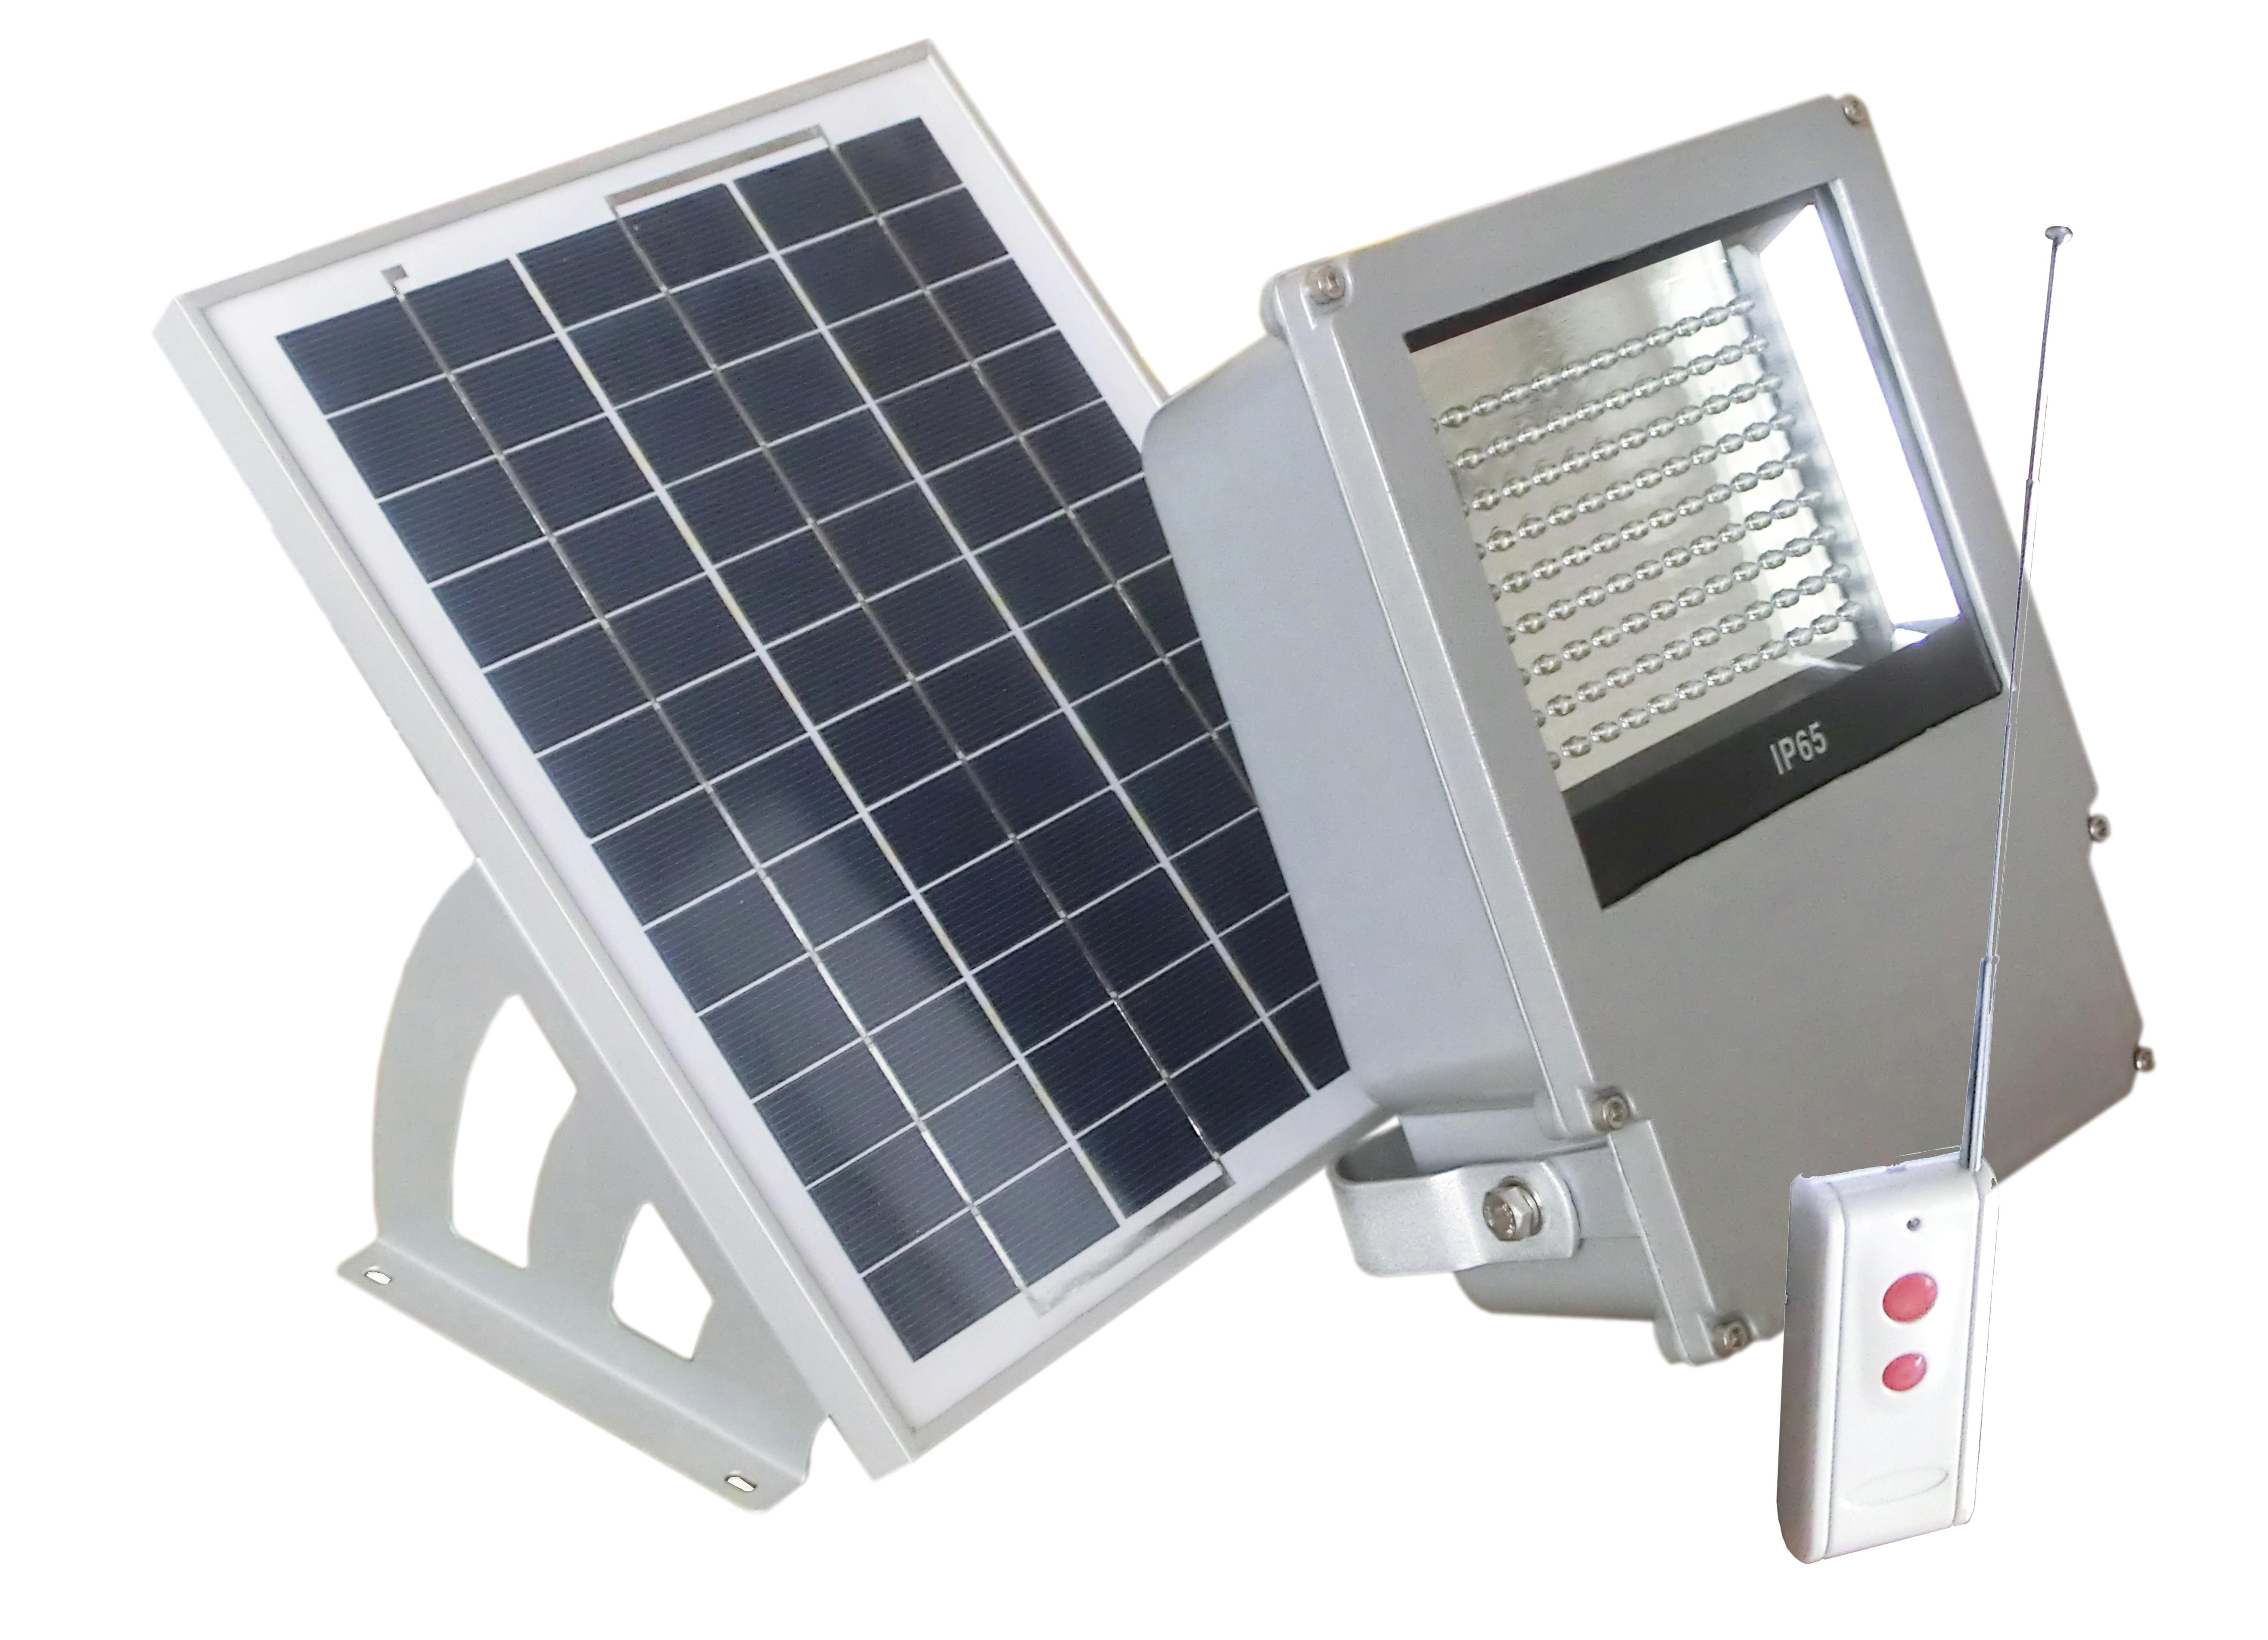 108 Led Outdoor Solar Powered Wall Mount Flood Light With Remote Ebay